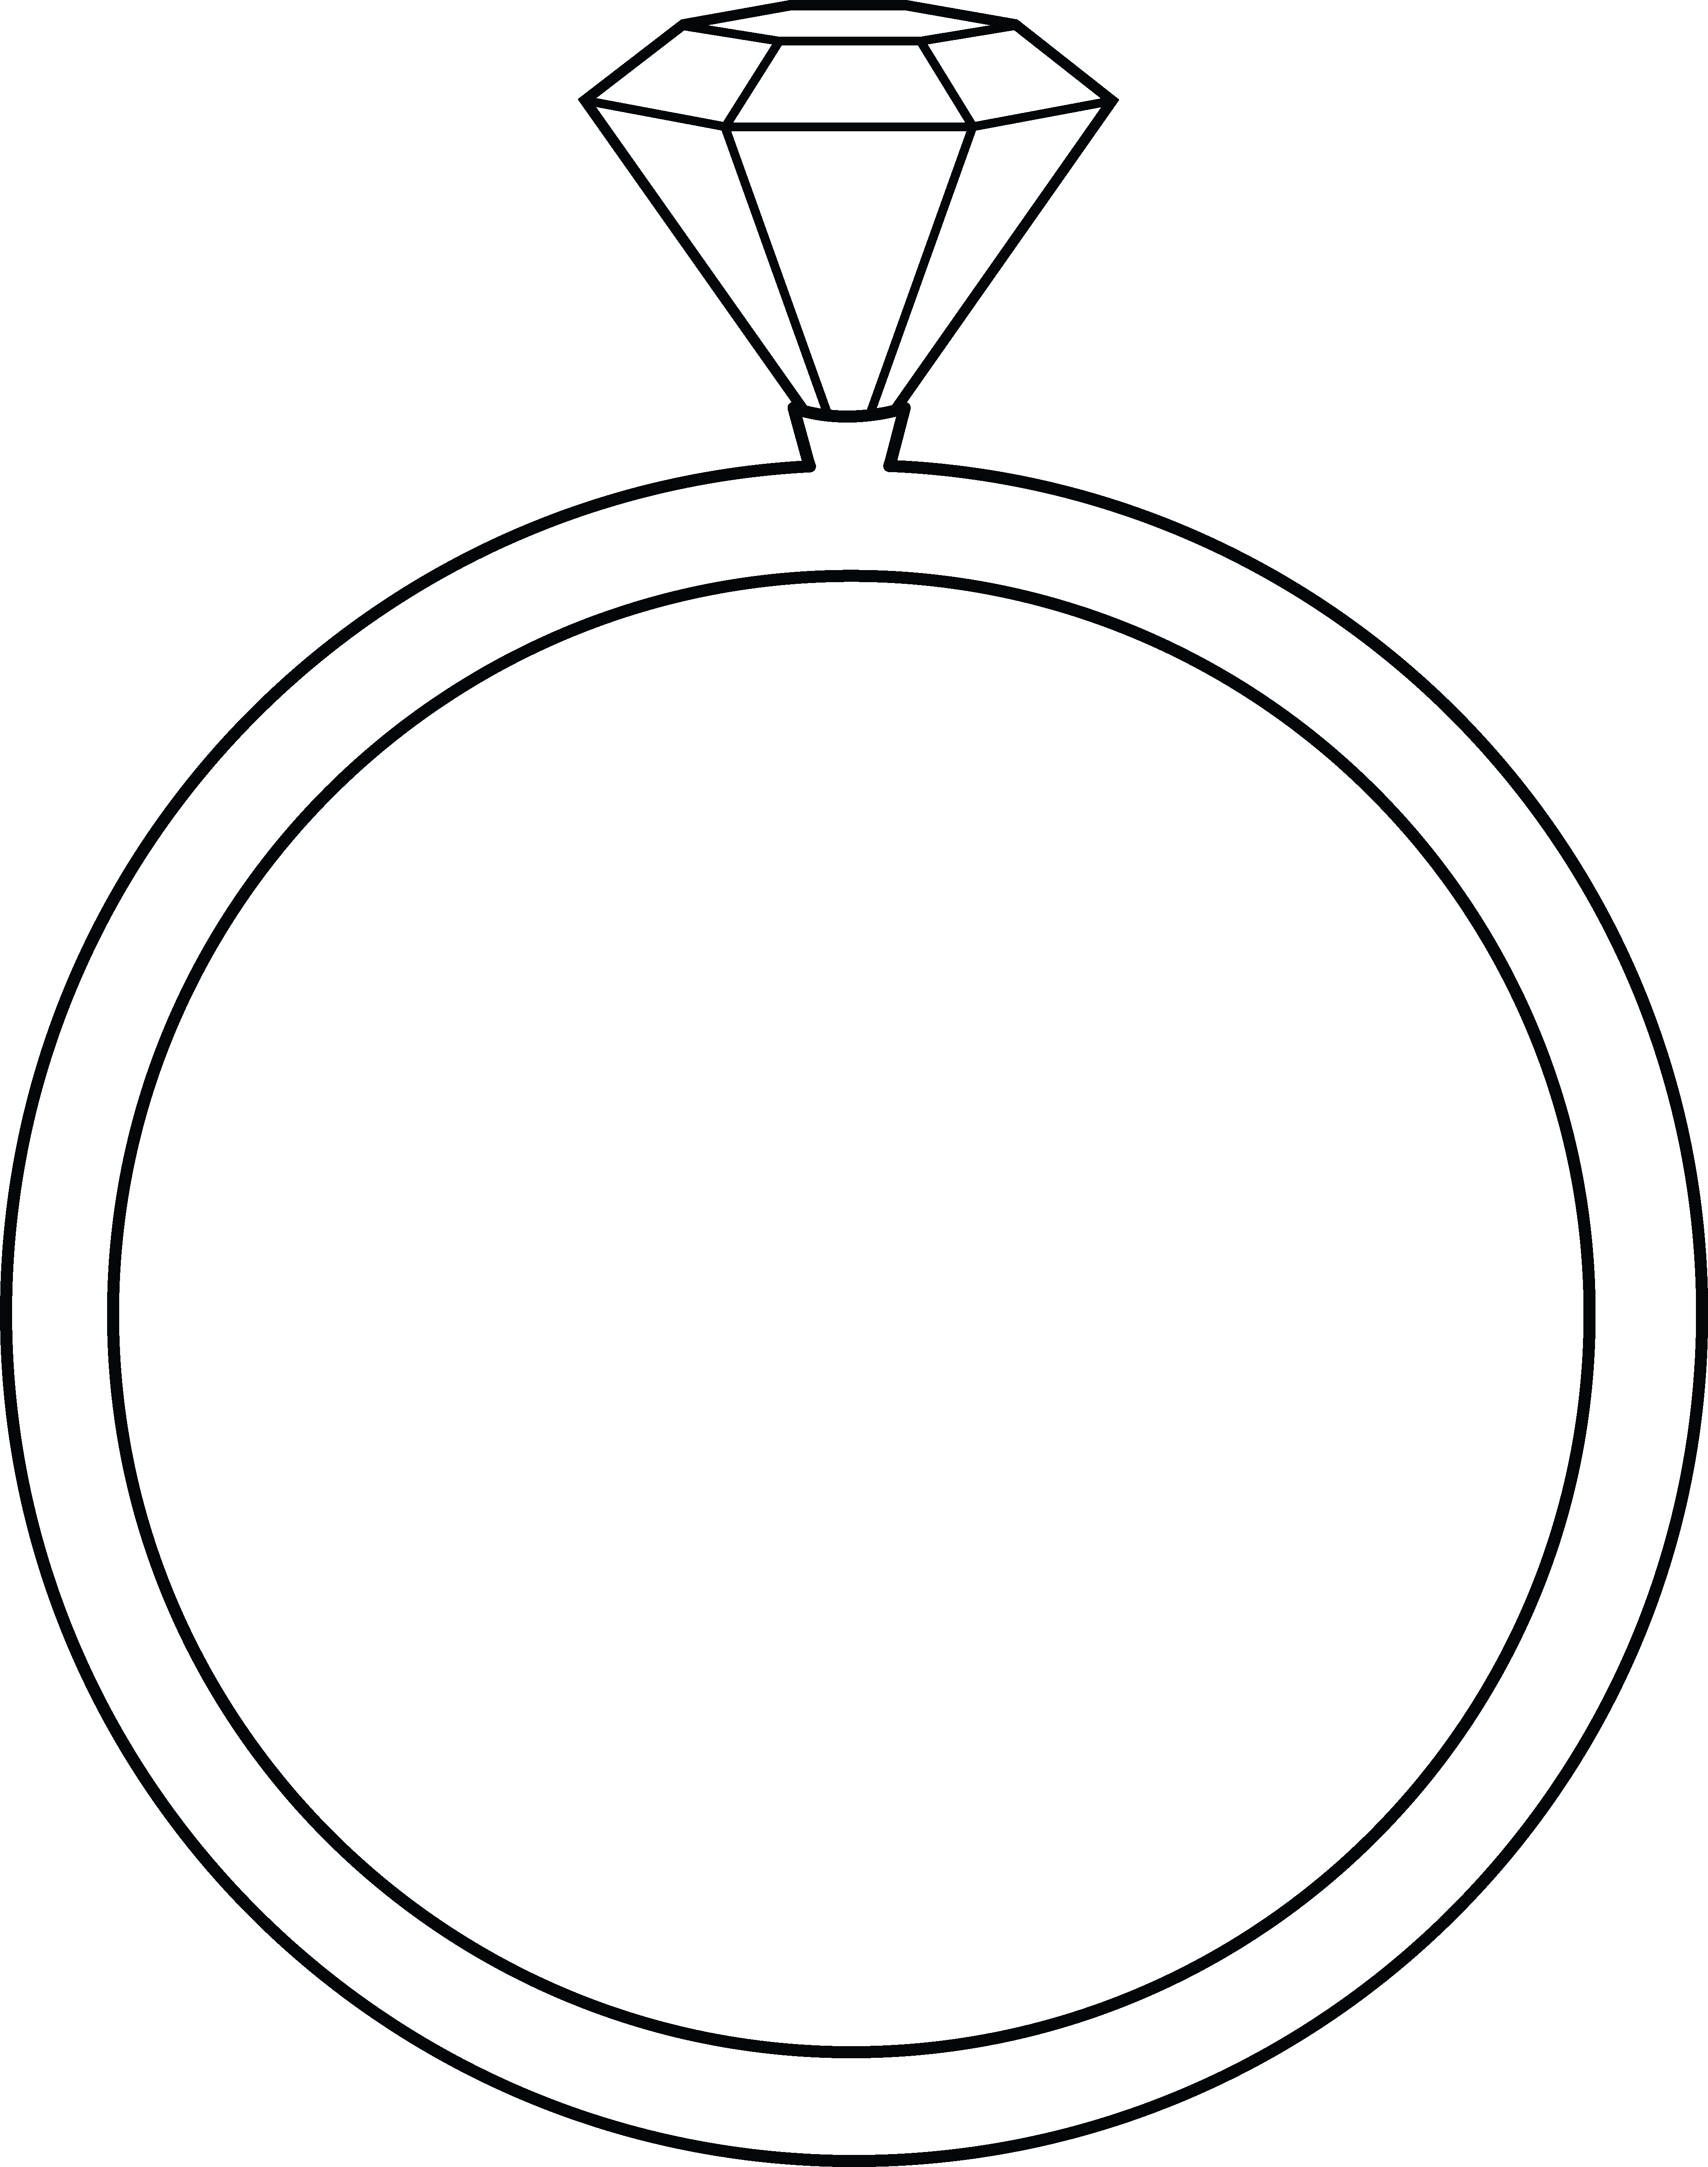 Ring art free clip. Clipart diamond line drawing